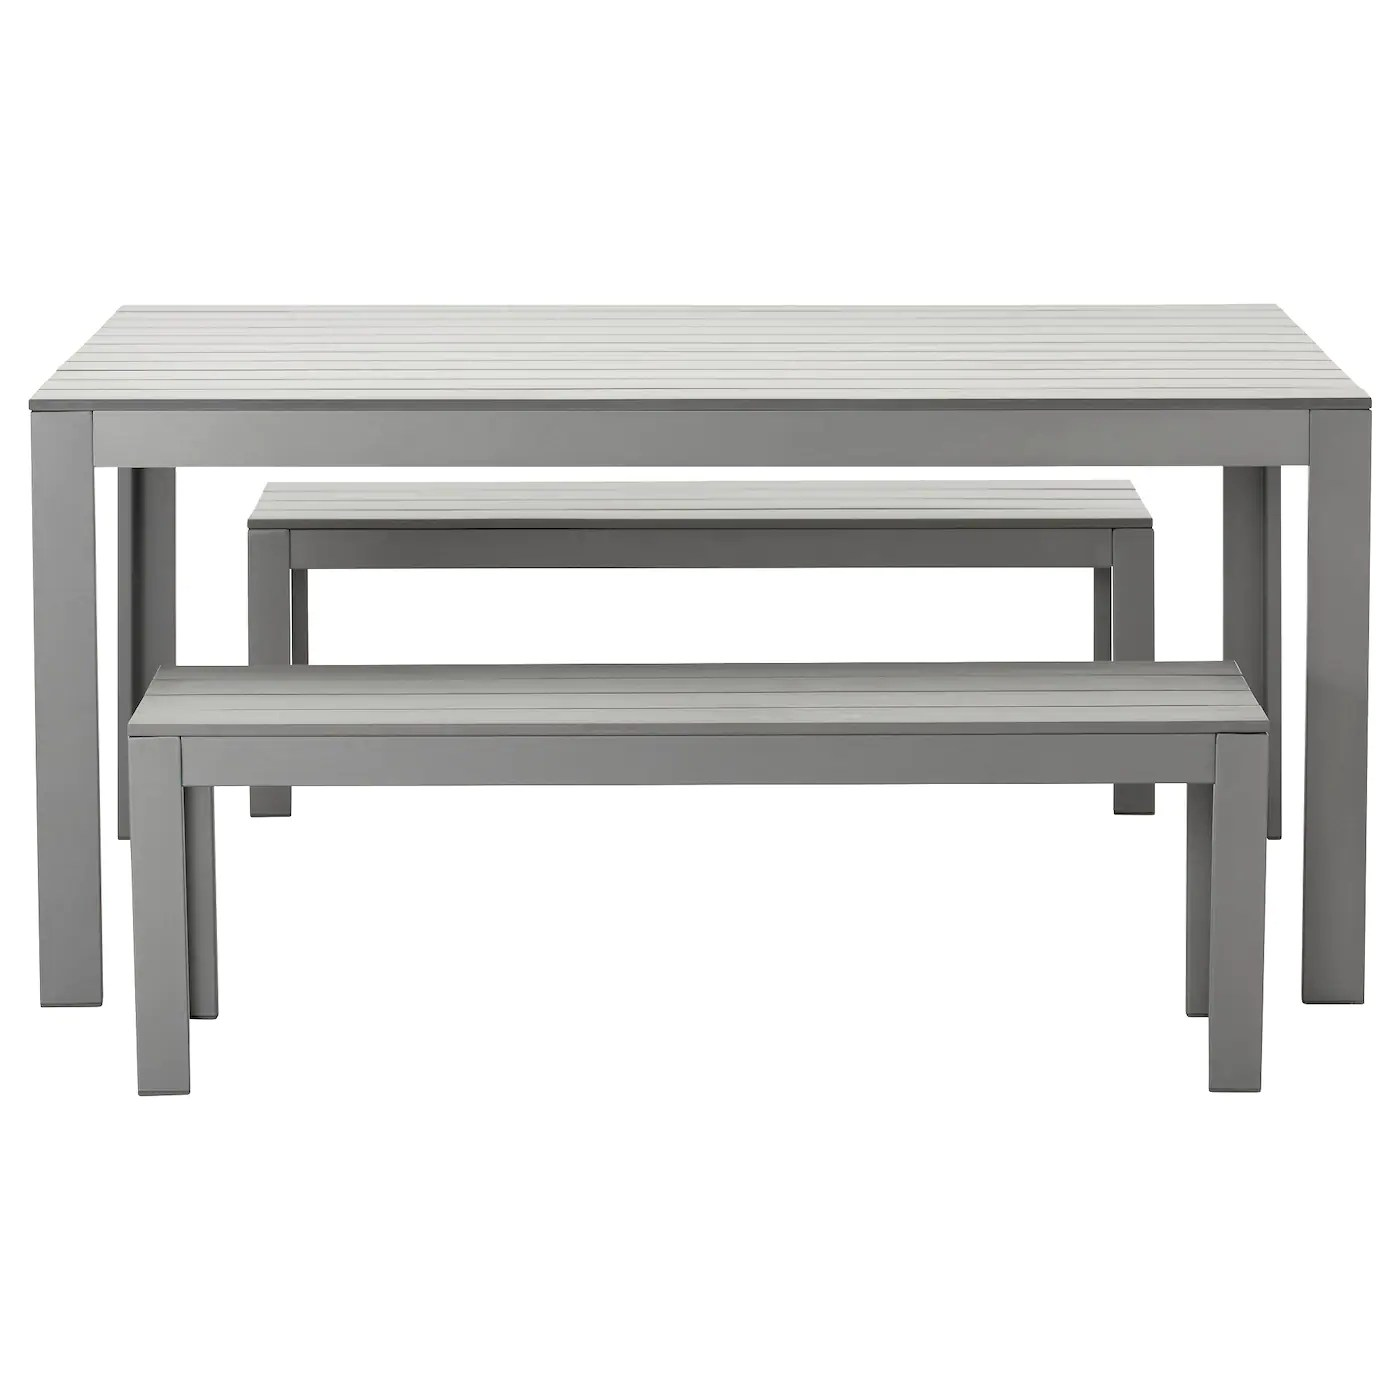 Table Exterieure Ikea Falster Table 432 Benches Outdoor Grey Ikea